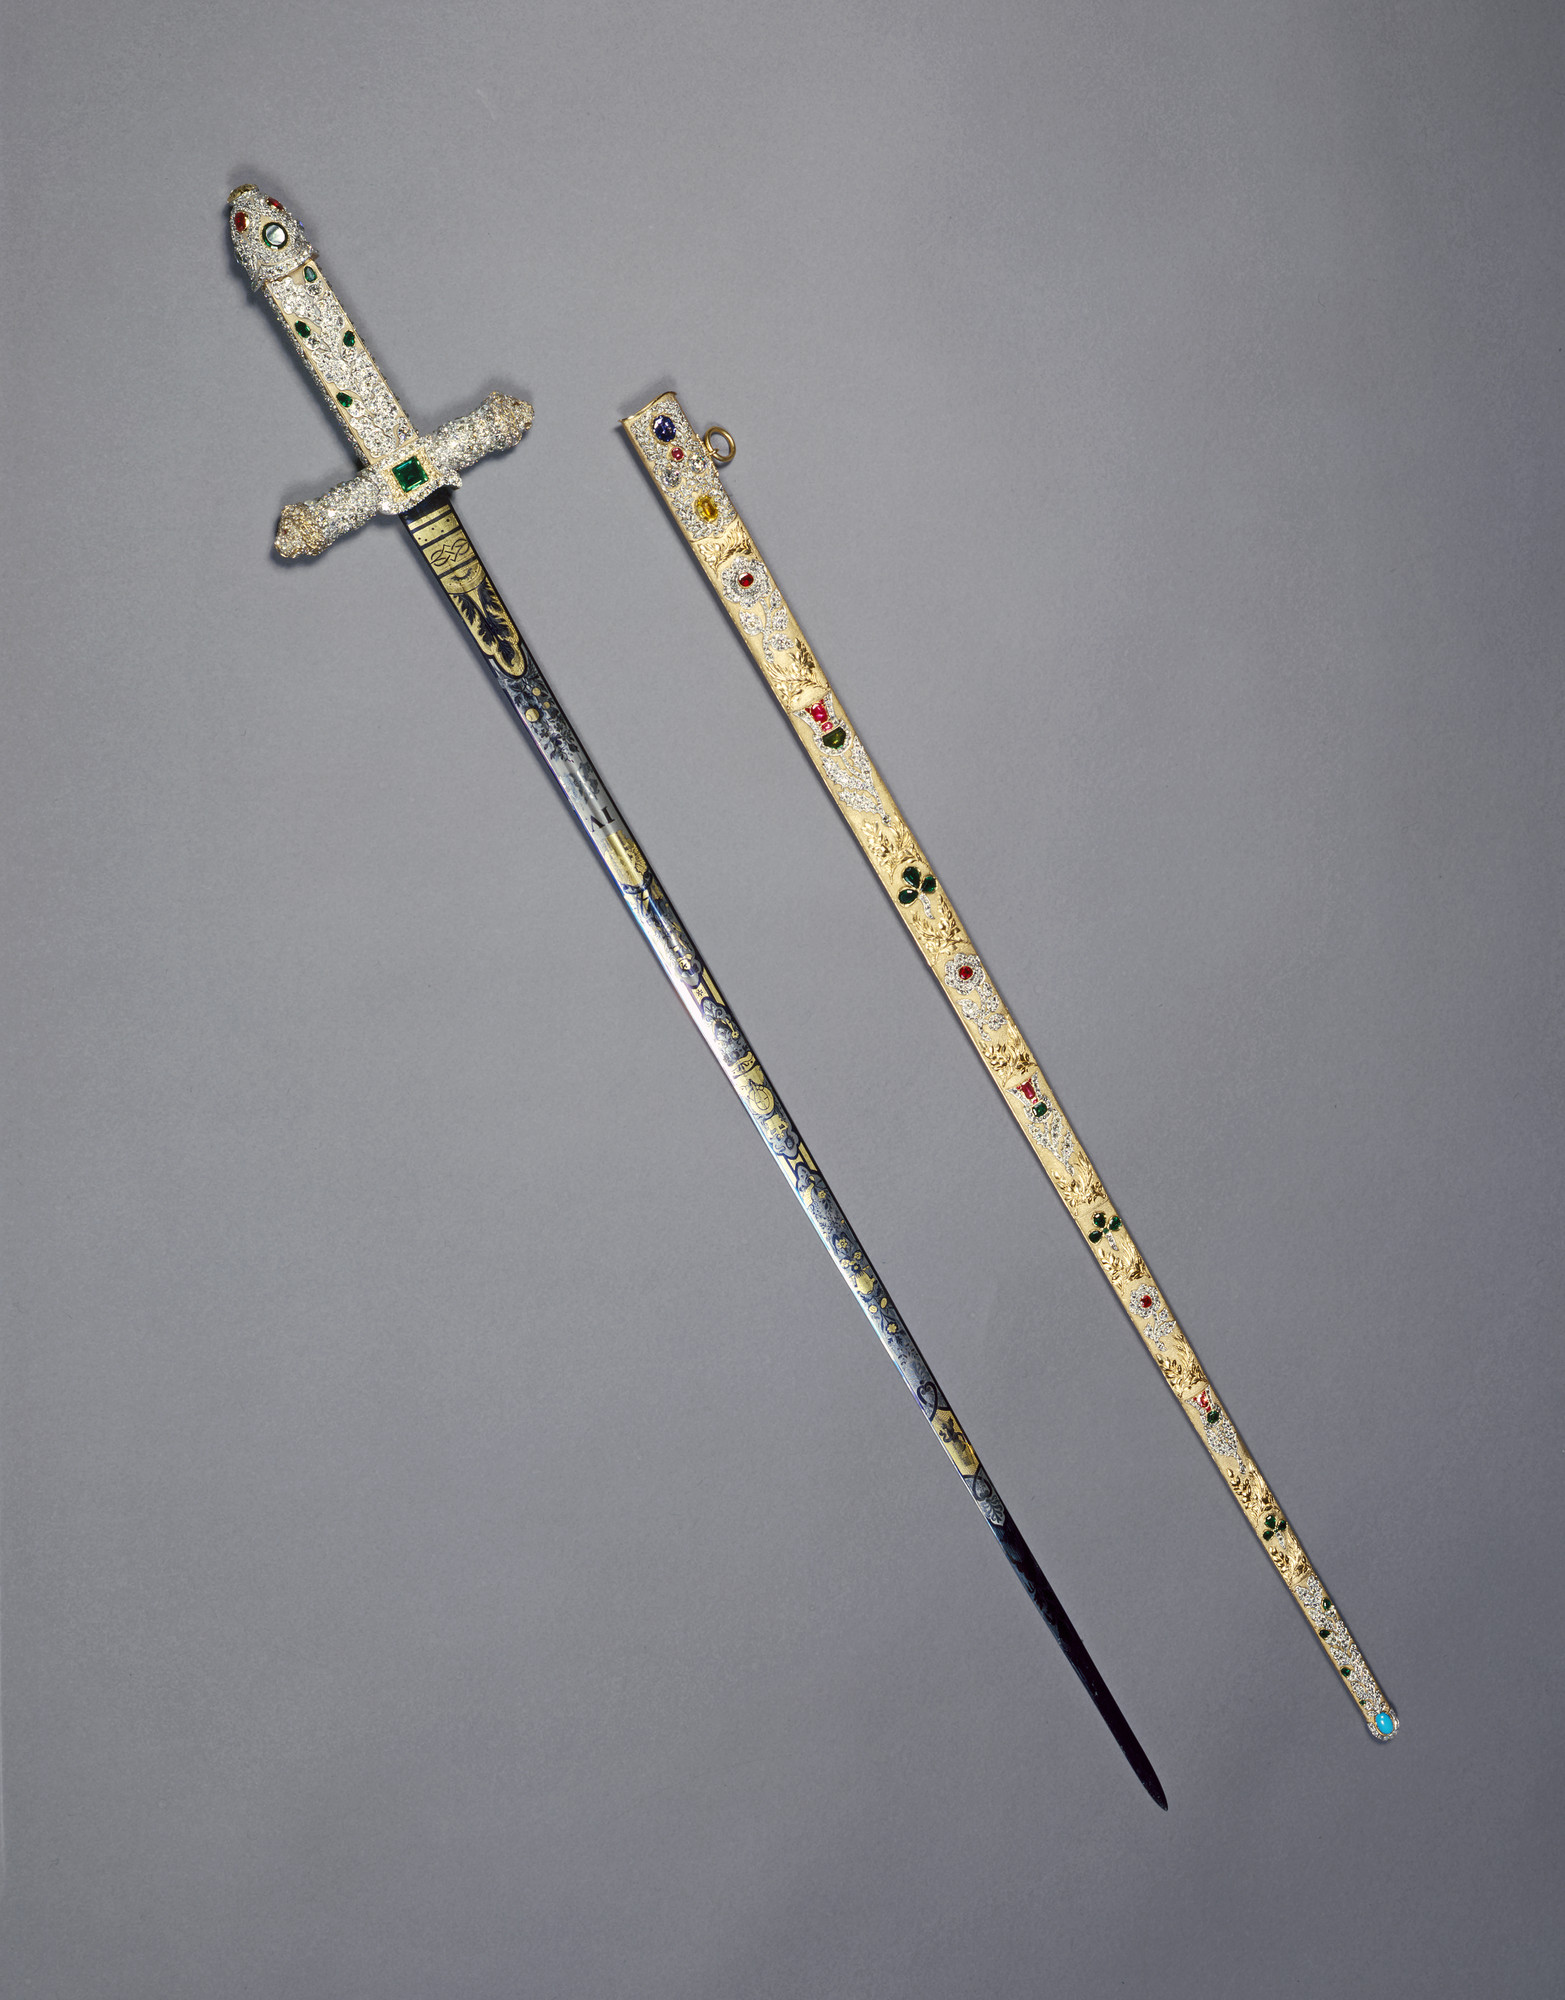 The Swords of State